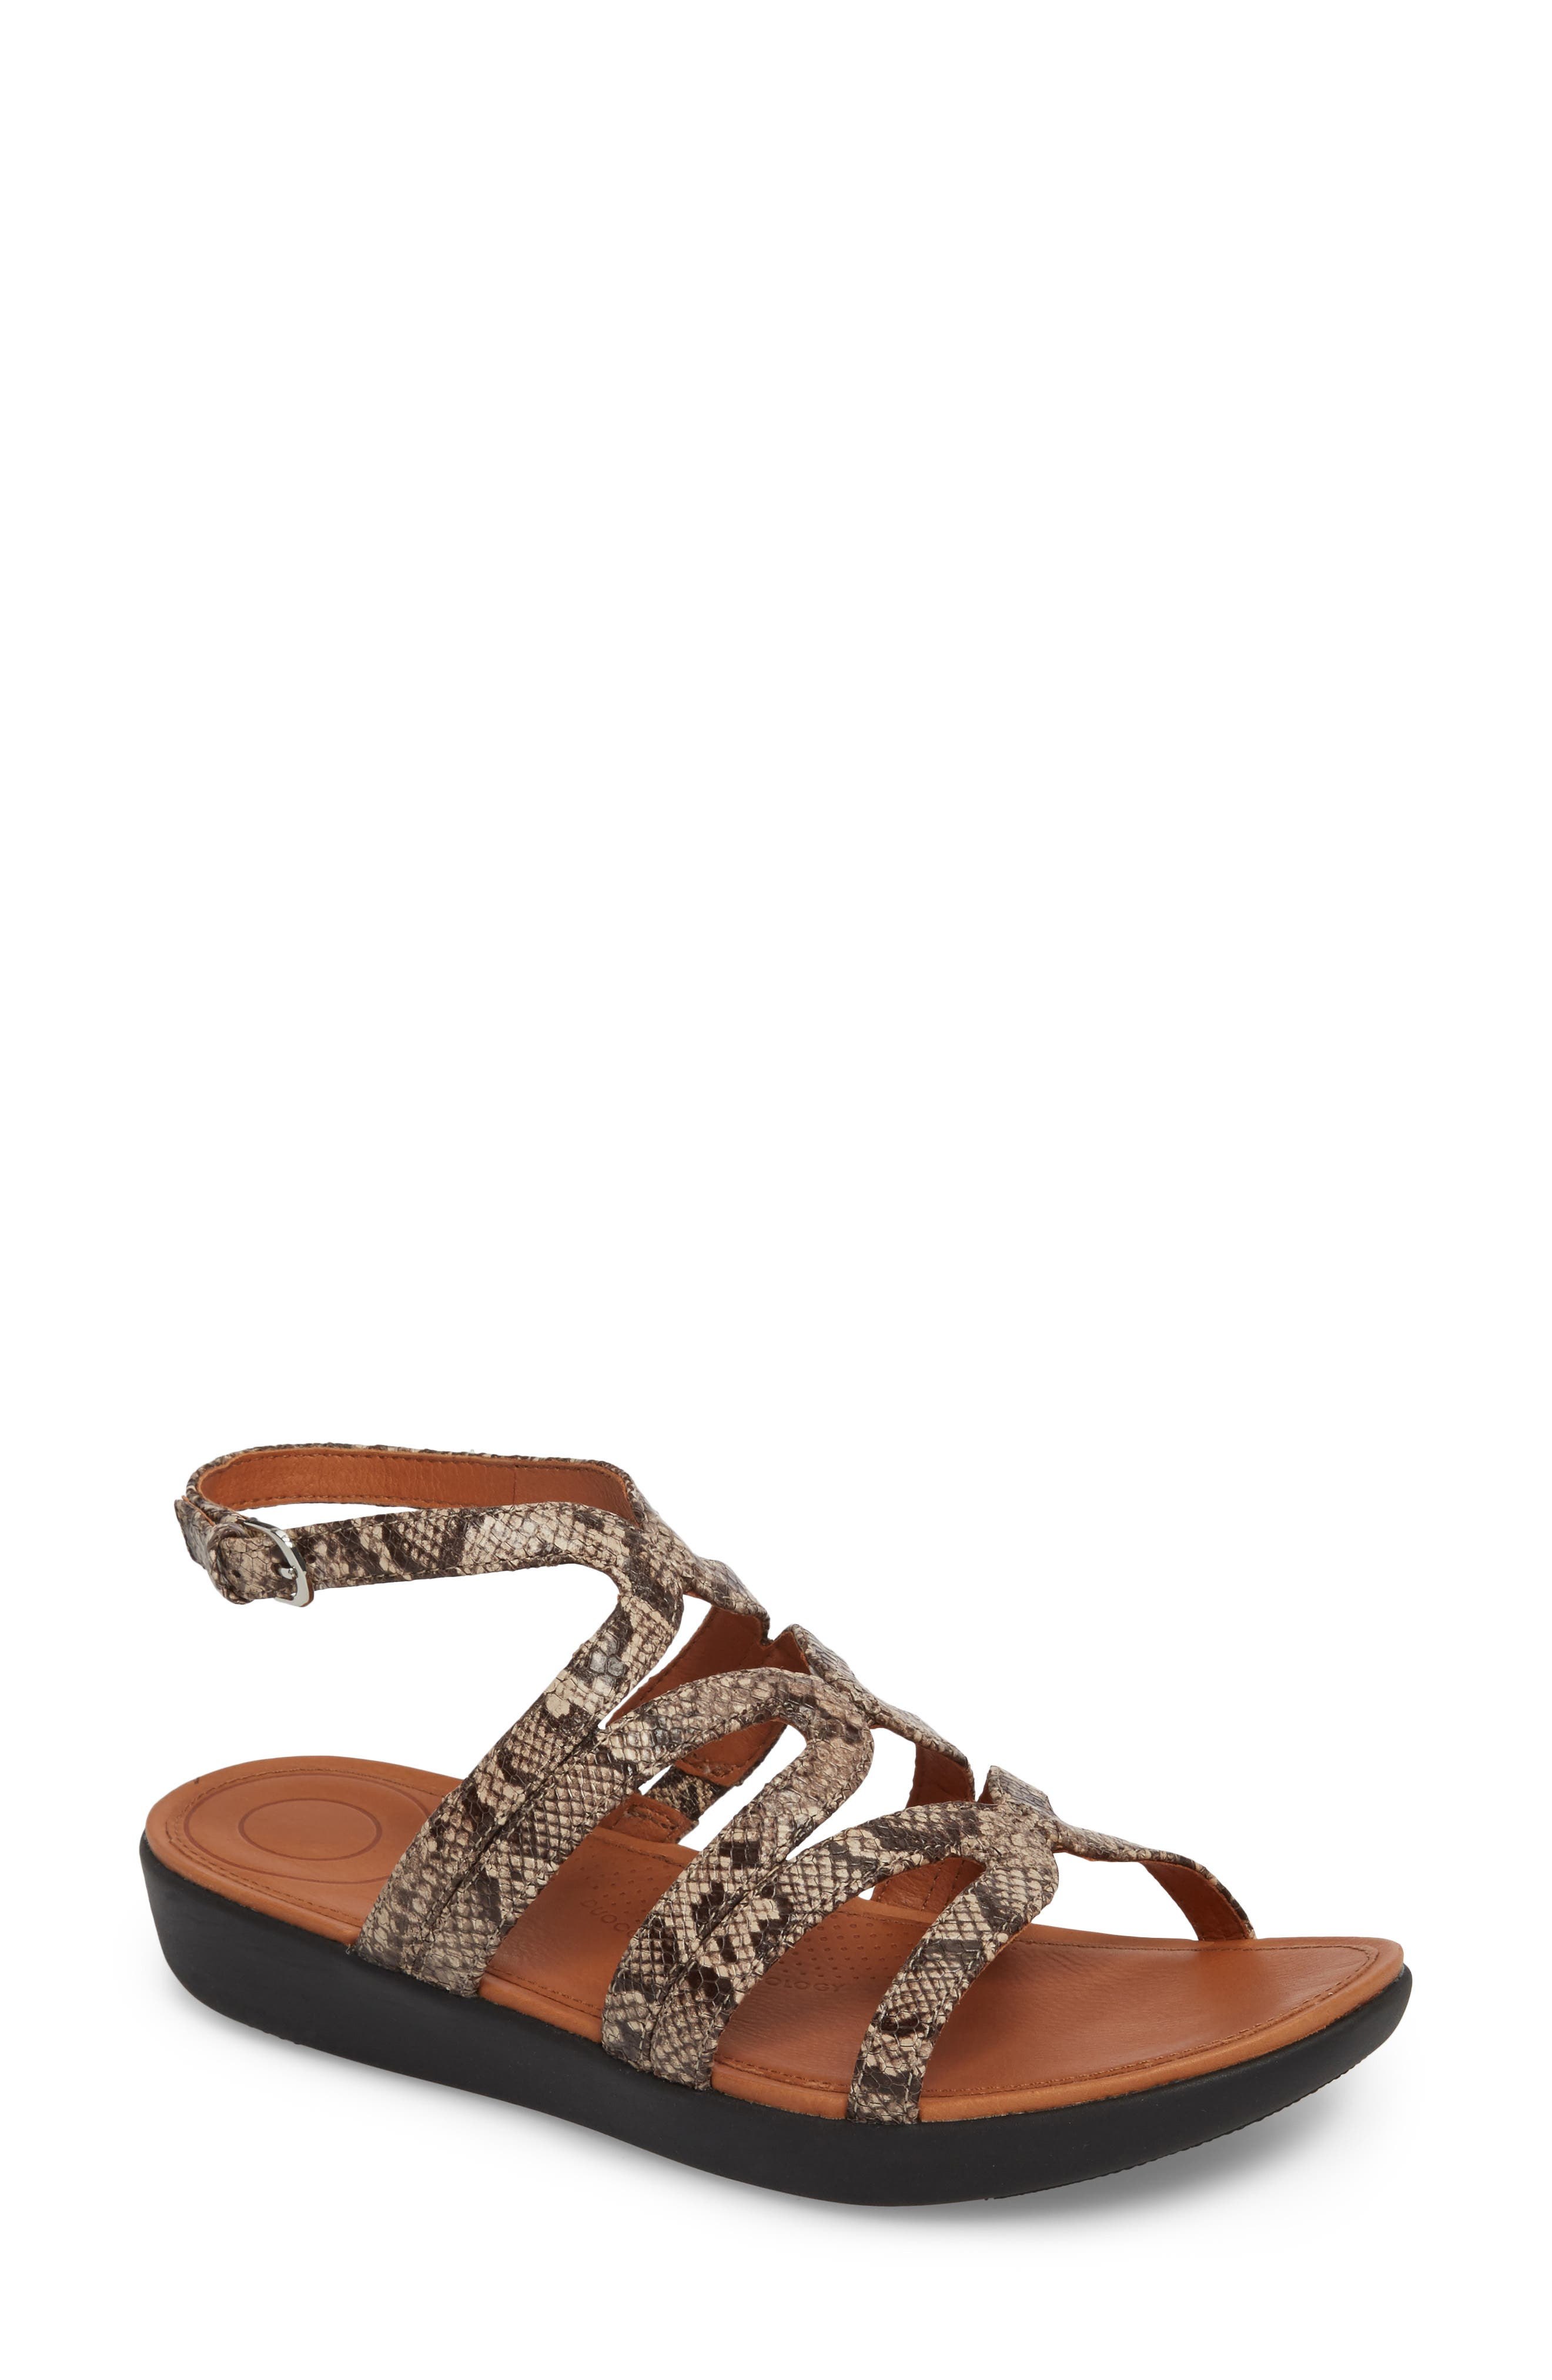 Strata Gladiator Sandal,                             Main thumbnail 2, color,